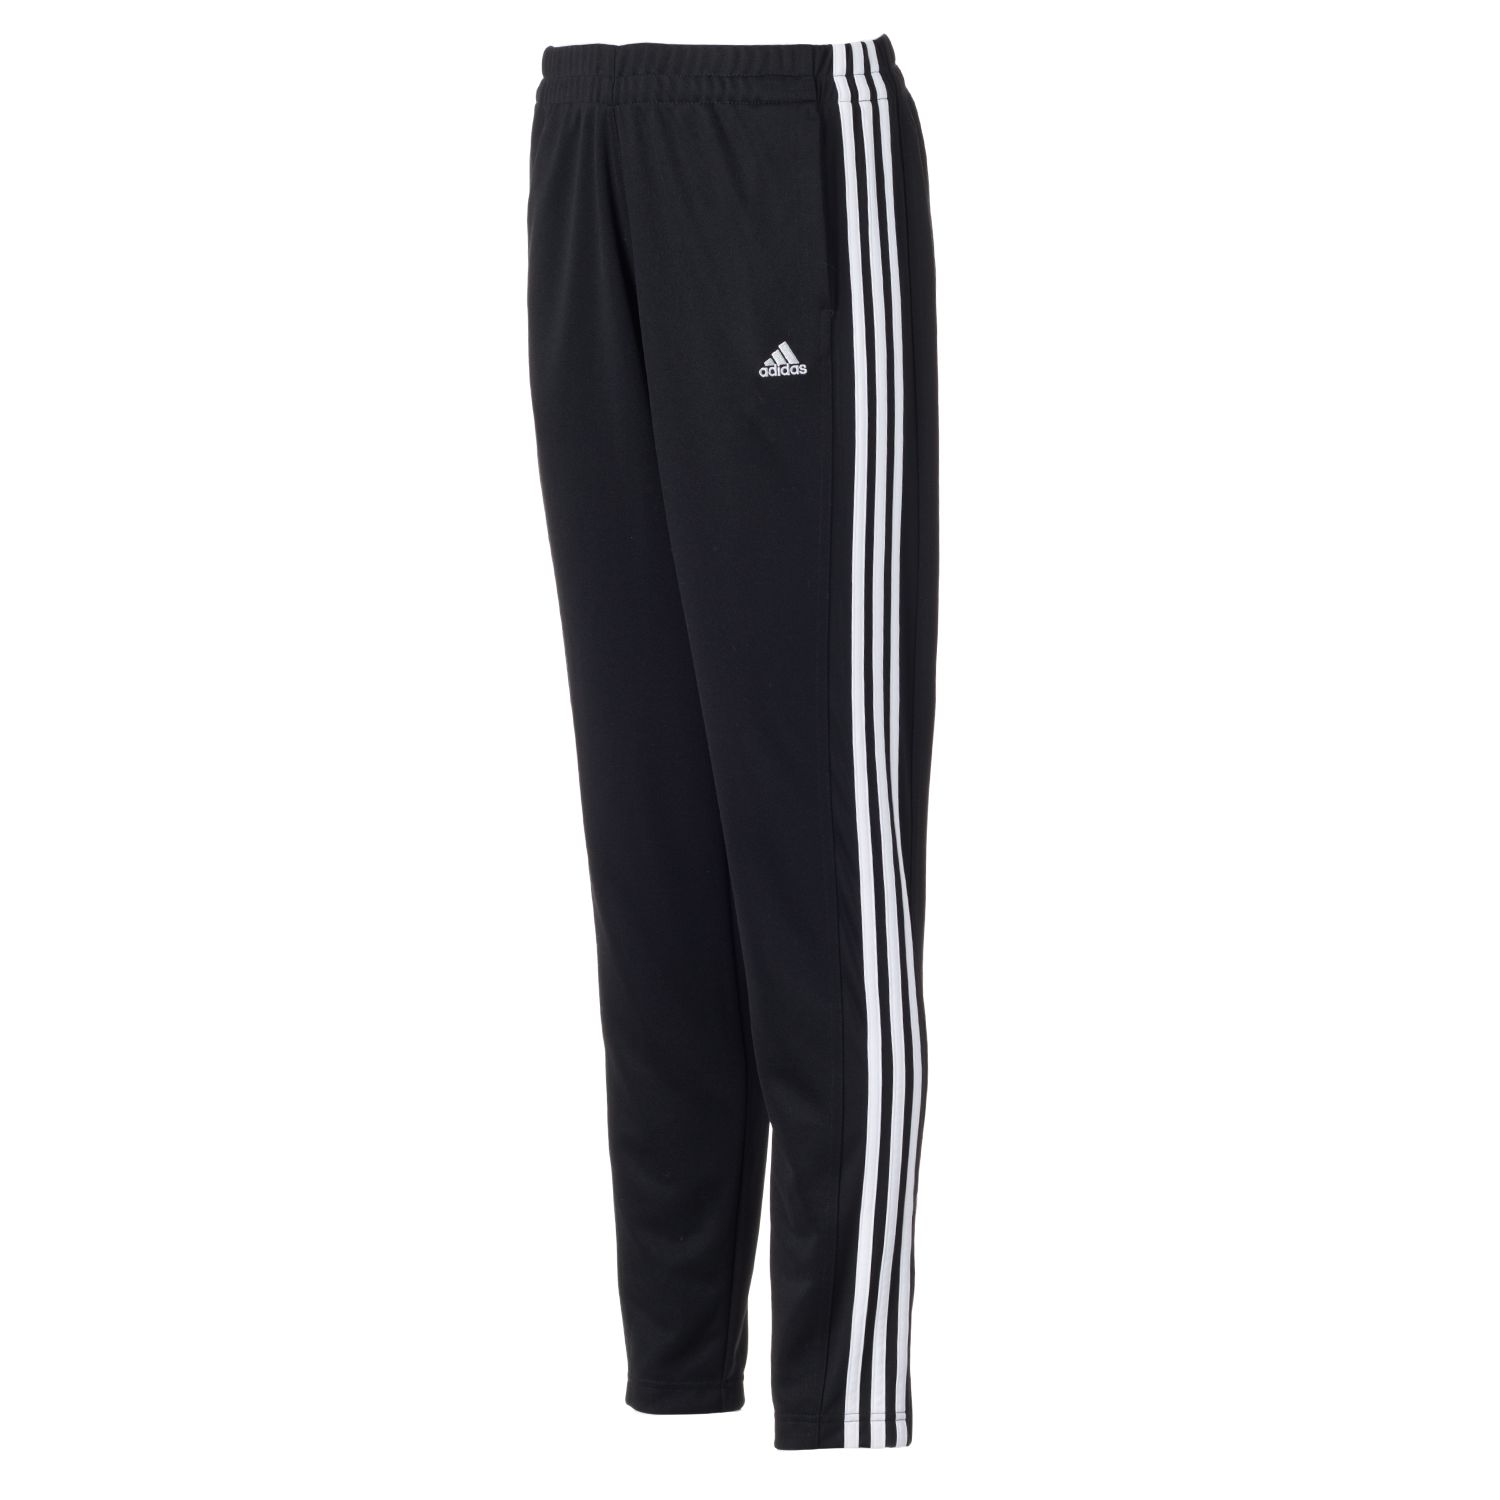 Womens adidas T10 climalite Soccer Pants